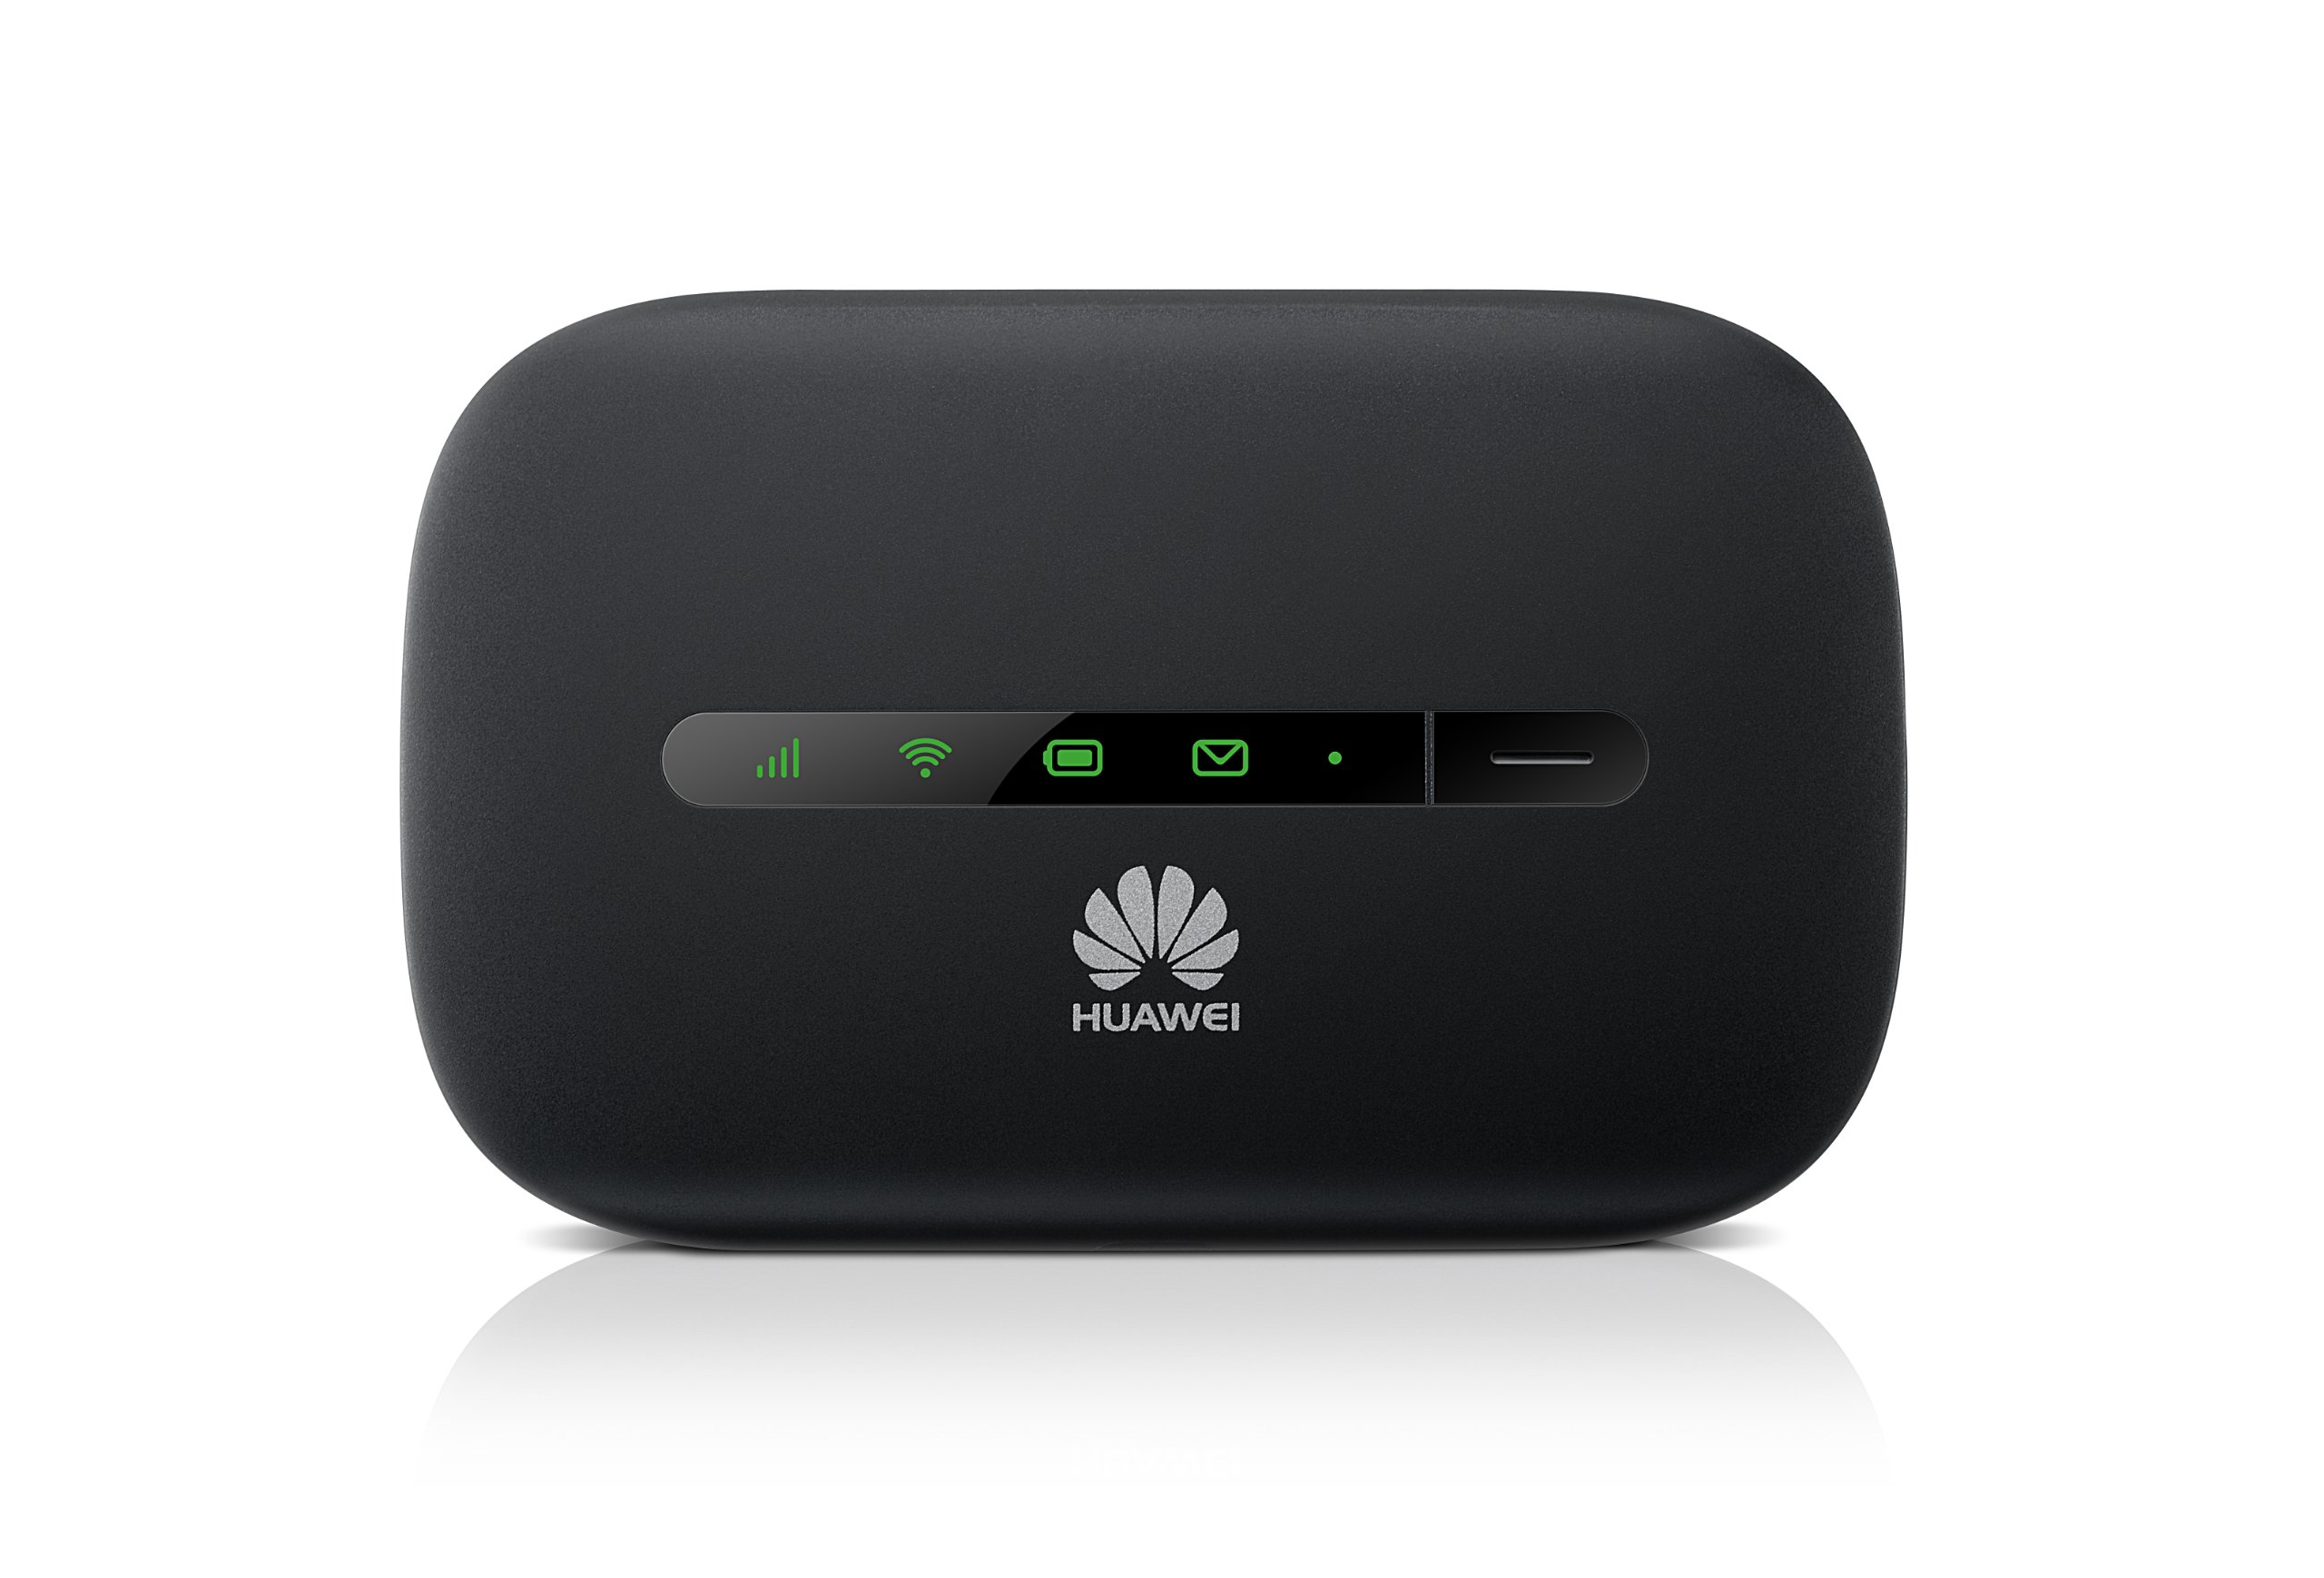 Huawei E5330Bs-2 3G Mobile WiFi Hotspot (3G in Europe, Asia, Middle East & Africa), OEM/ORIGINAL from Huawei. Black by HUAWEI